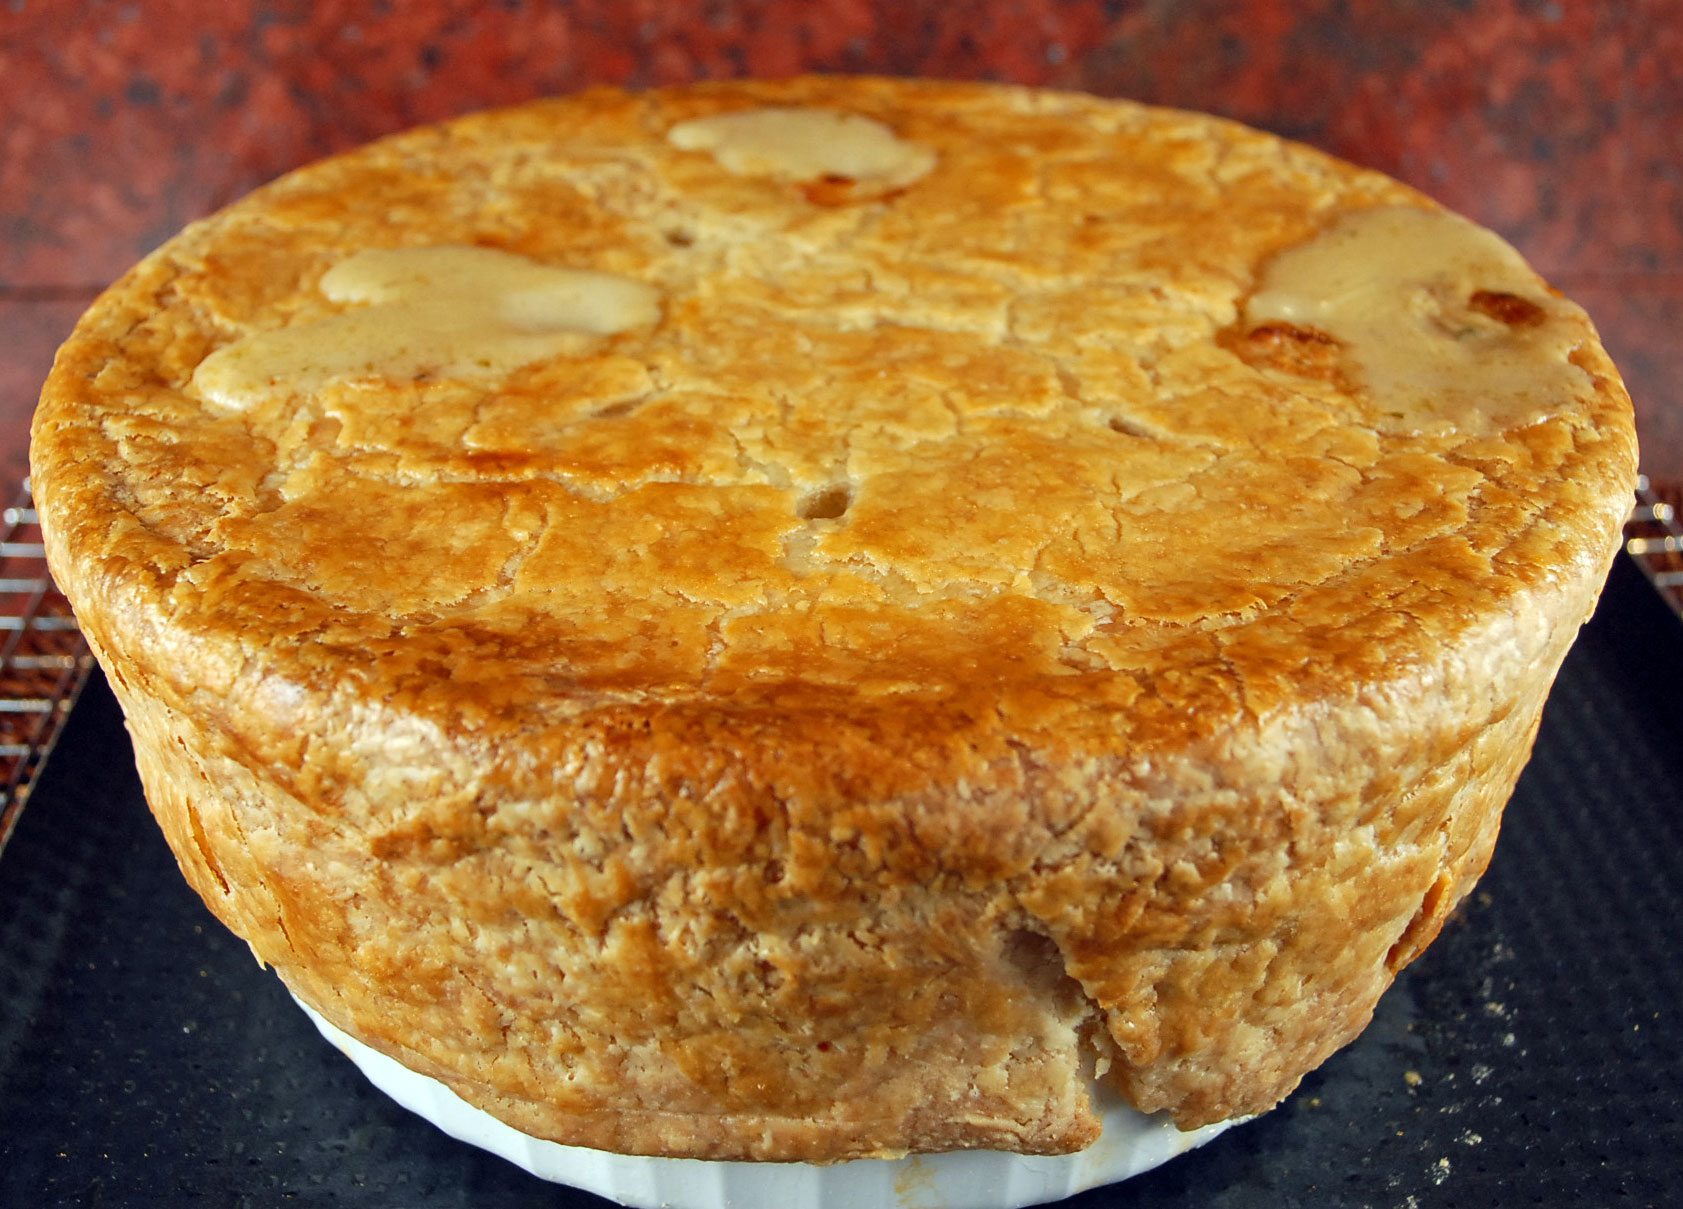 Chicken-Pie-1.jpg?1255663440